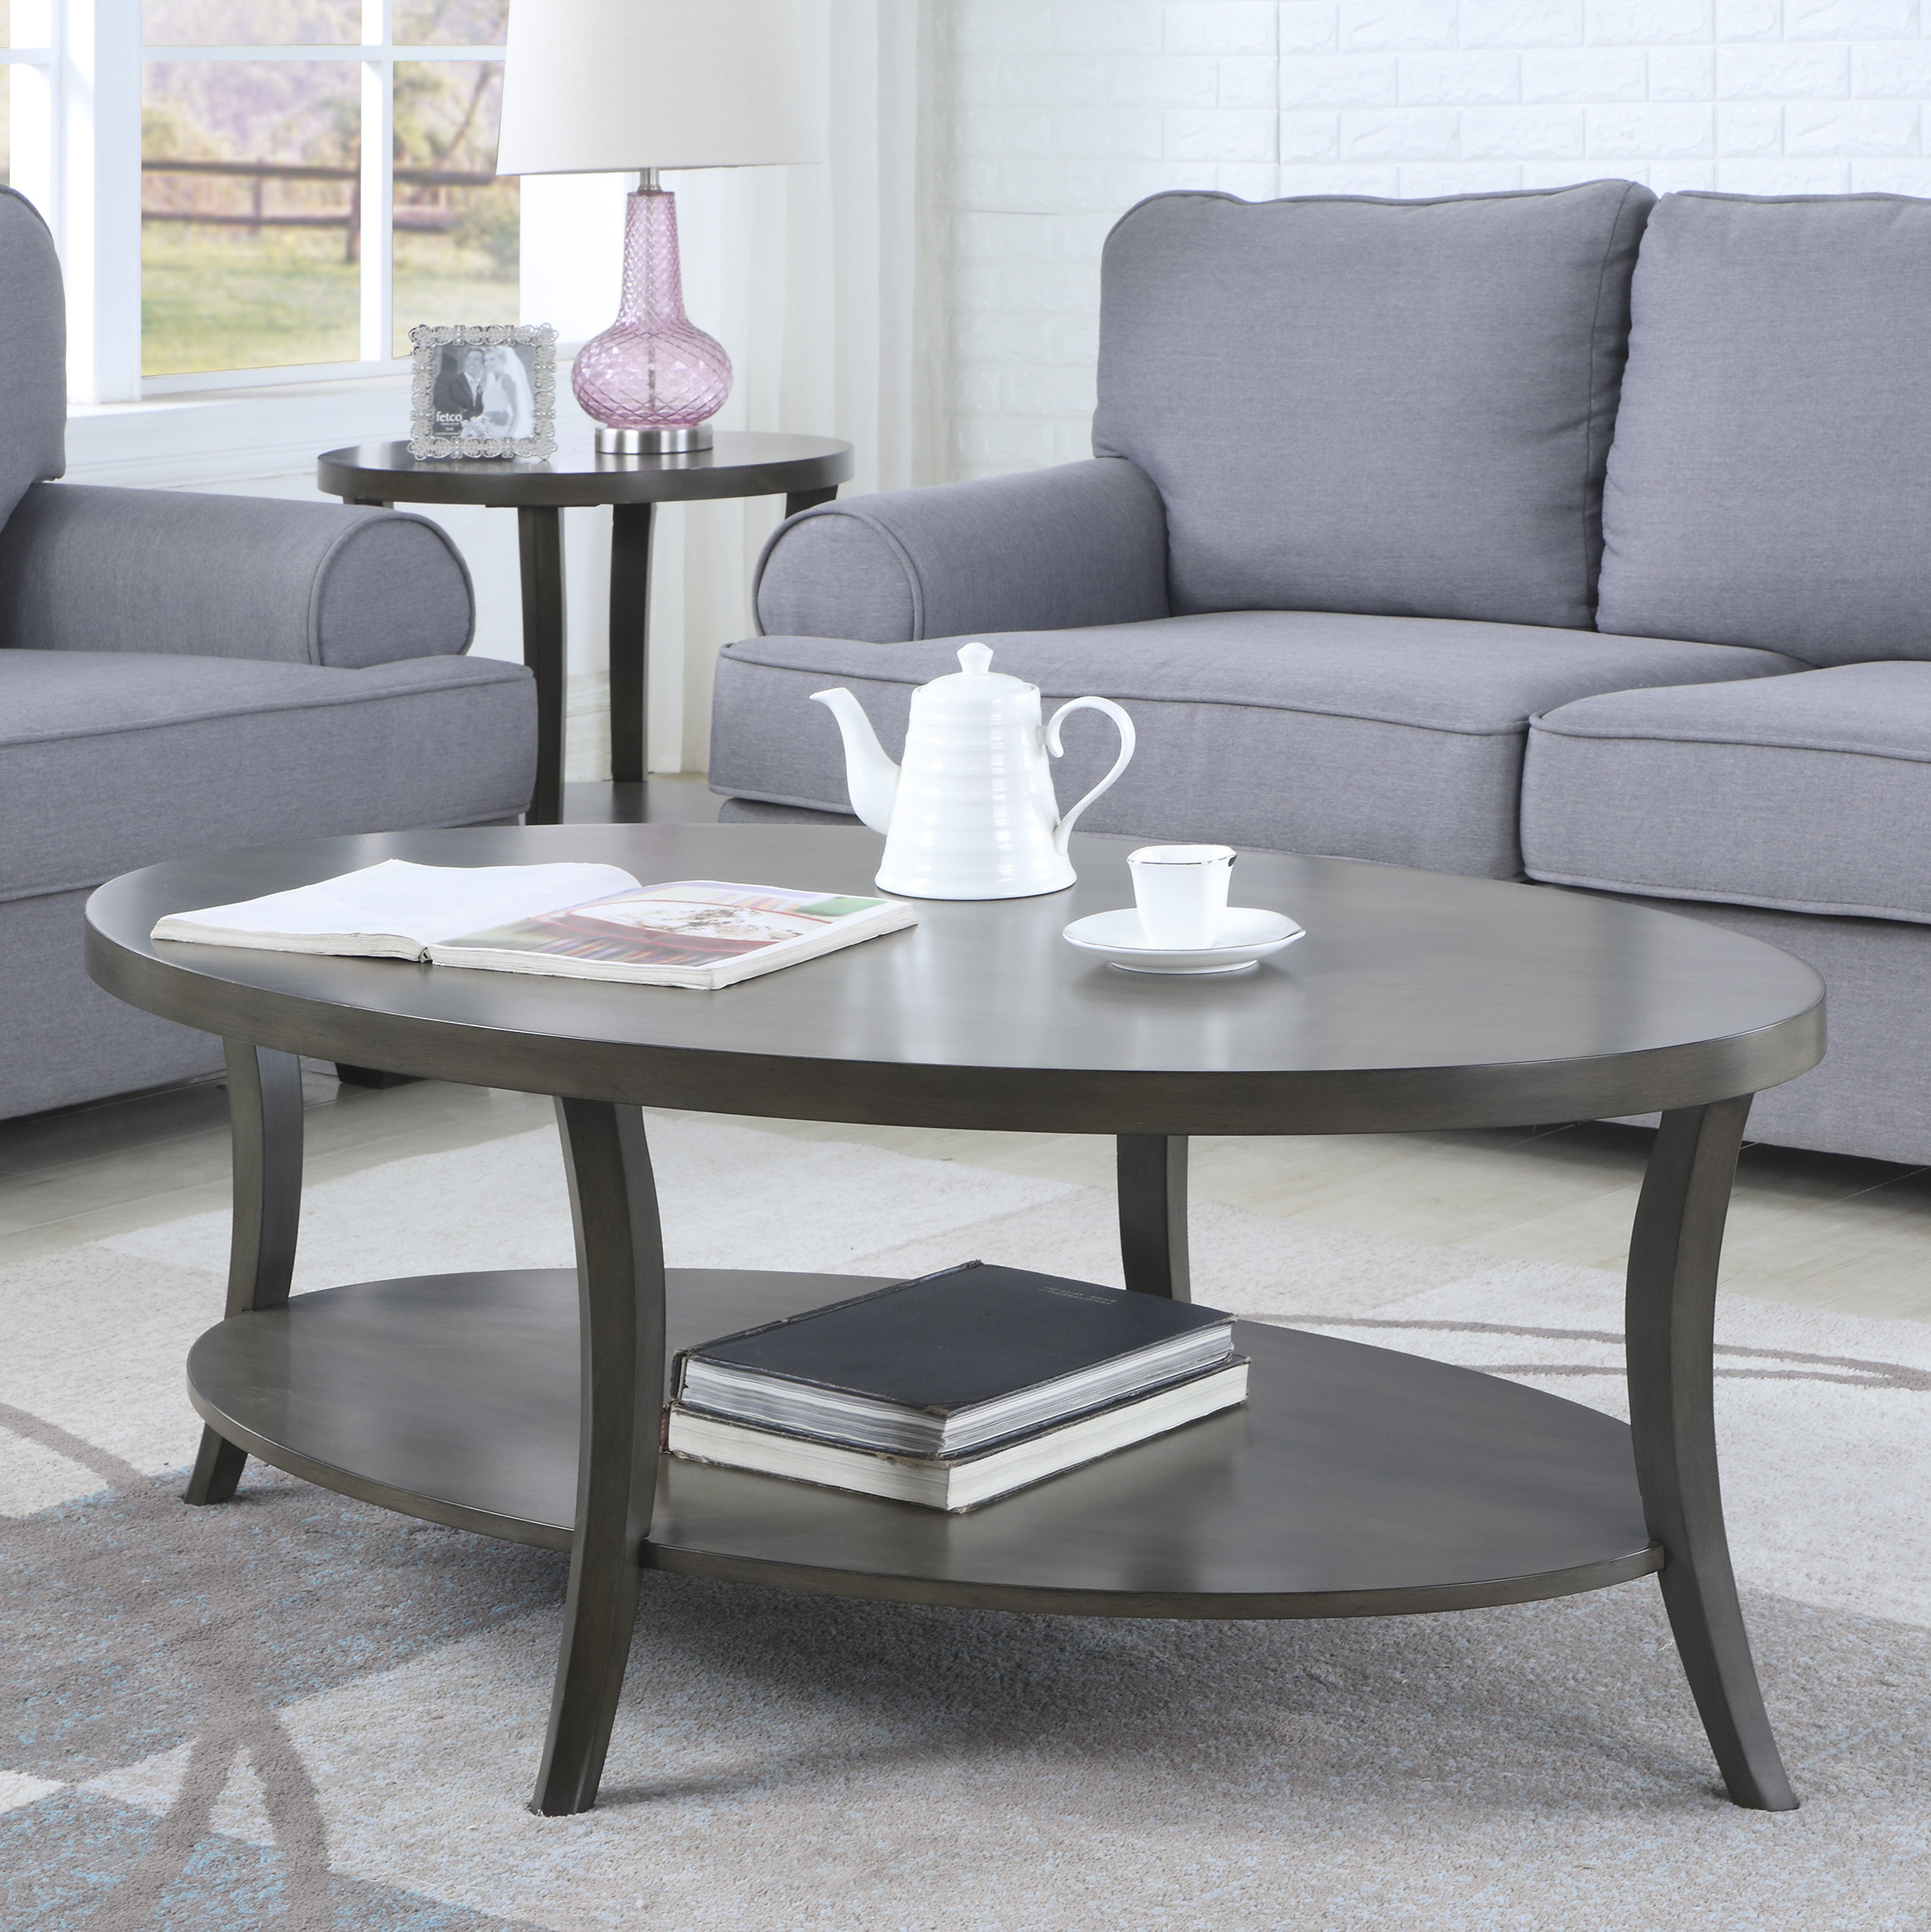 Oval Coffee Table With Shelf.Roundhill Perth Contemporary Oval Shelf Coffee Table Gray